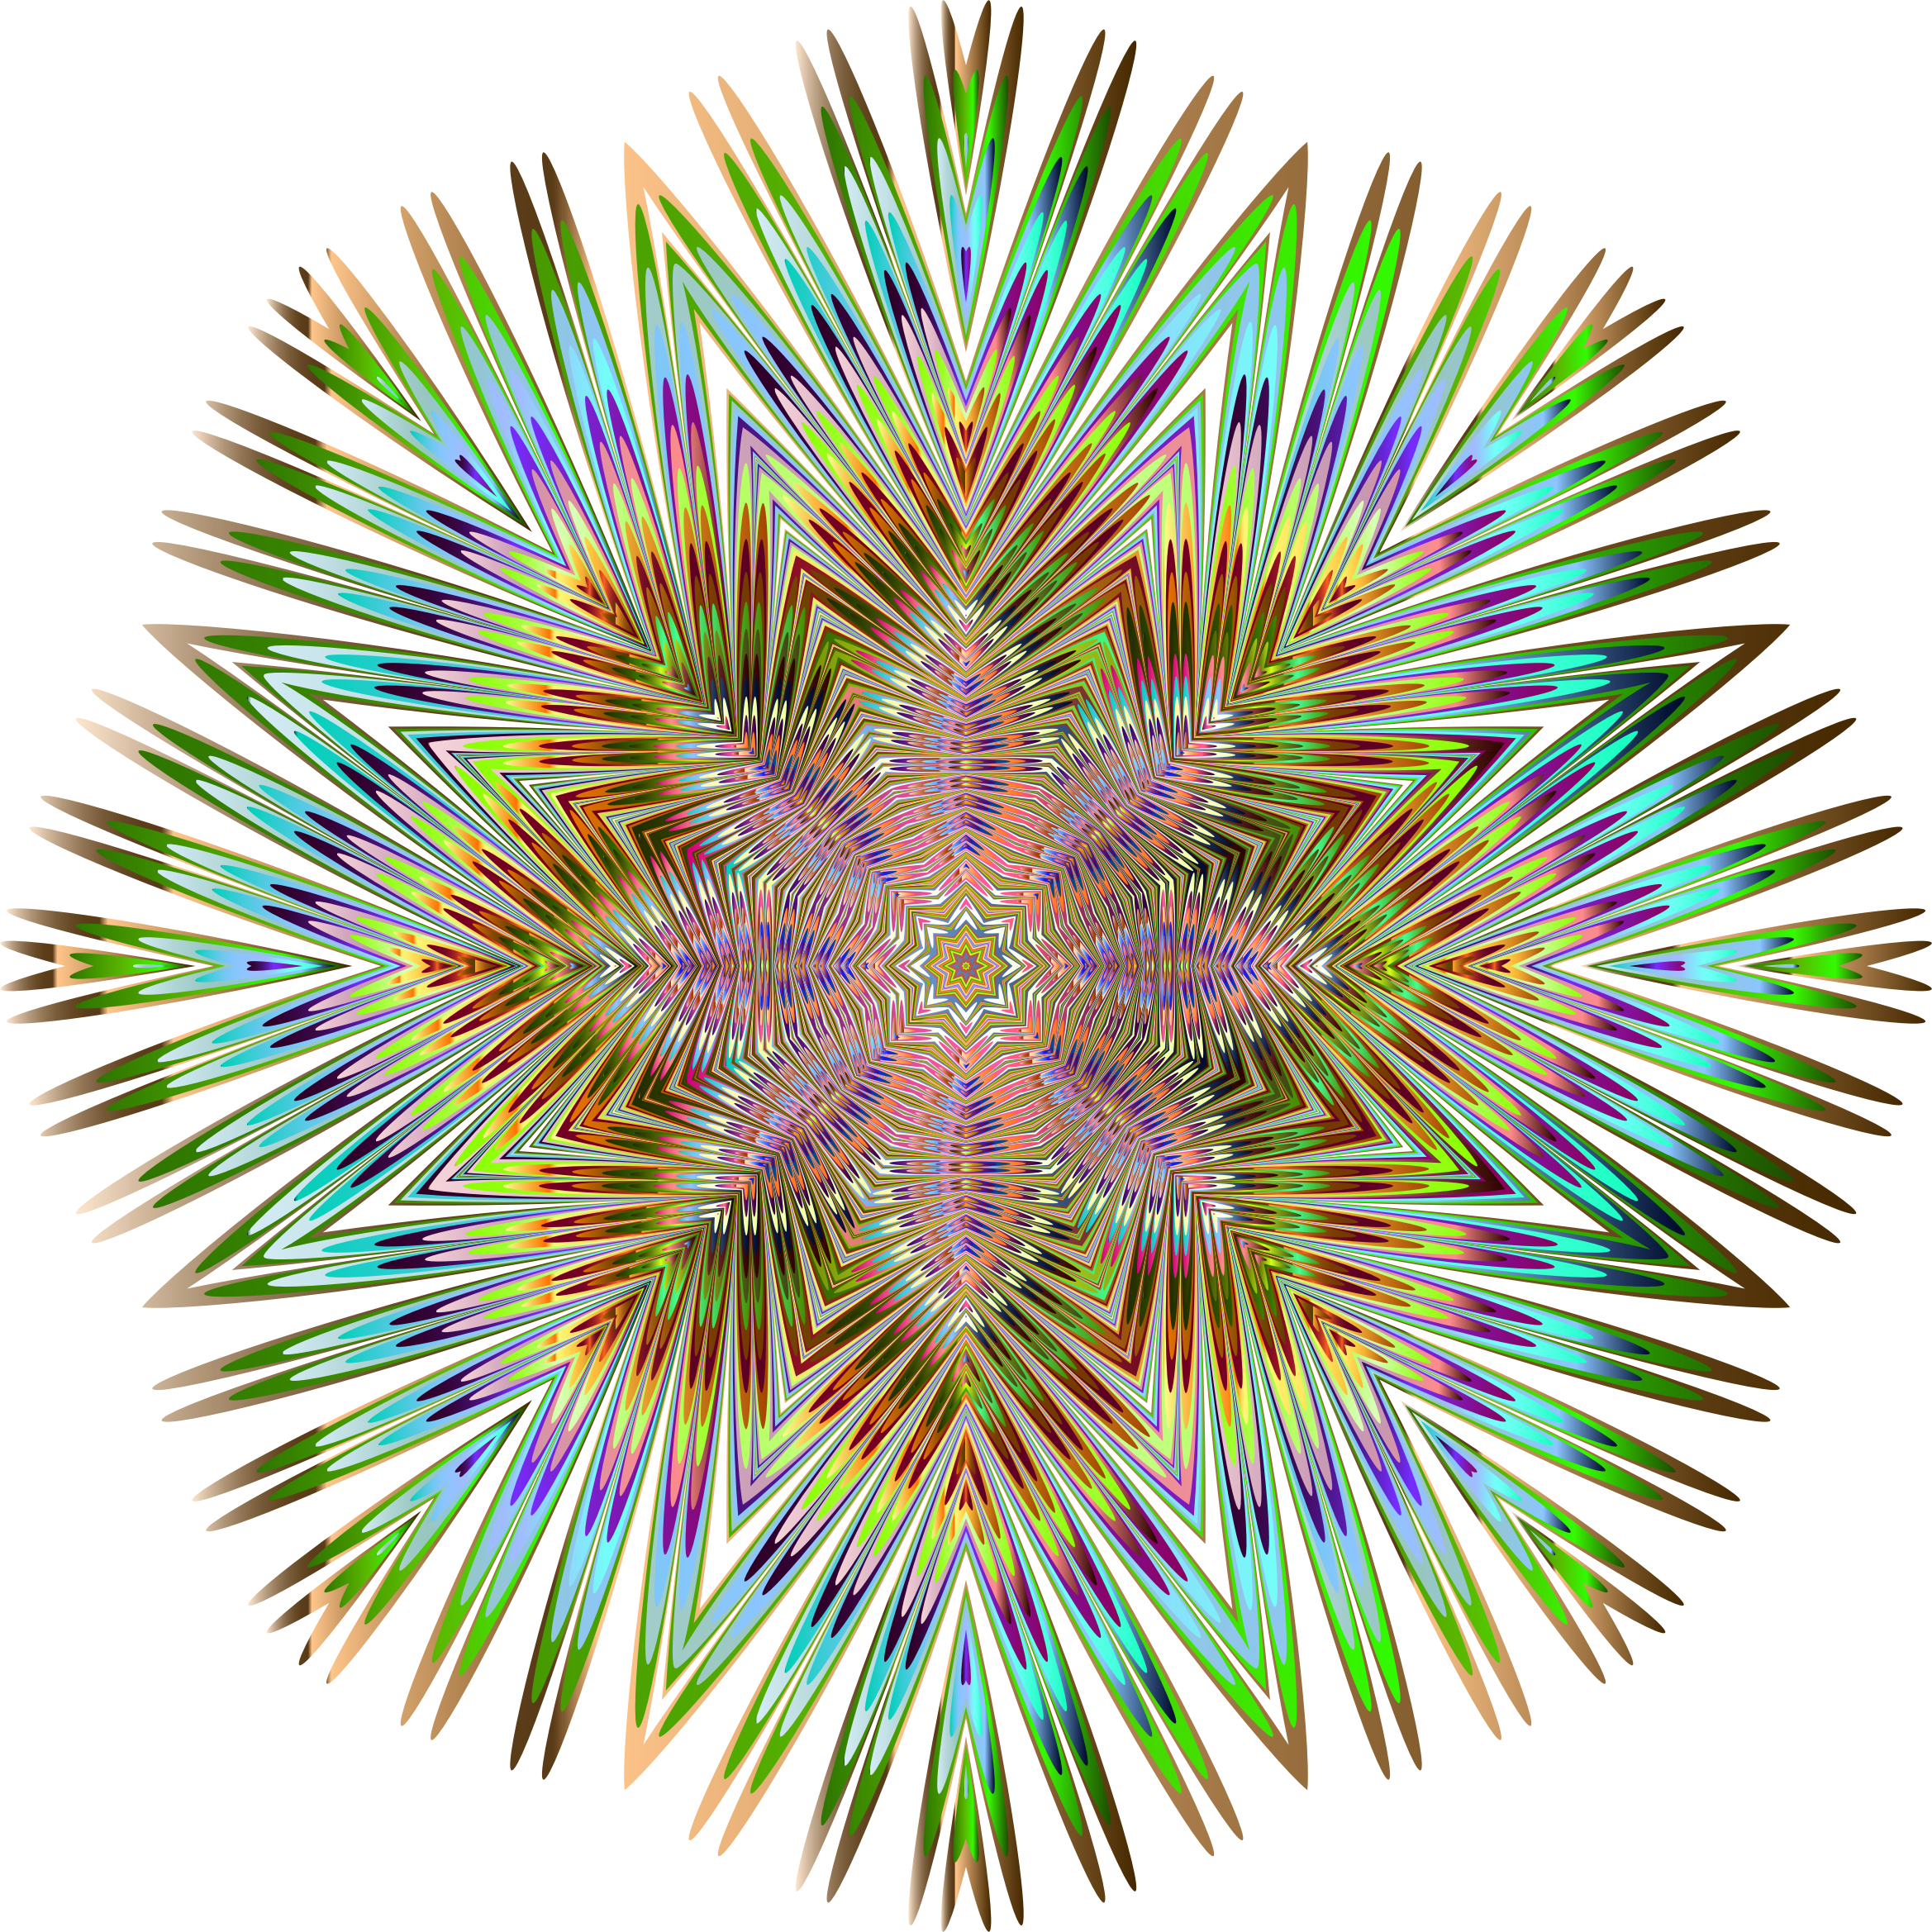 Chromatic Symmetric Mandala No Background by GDJ